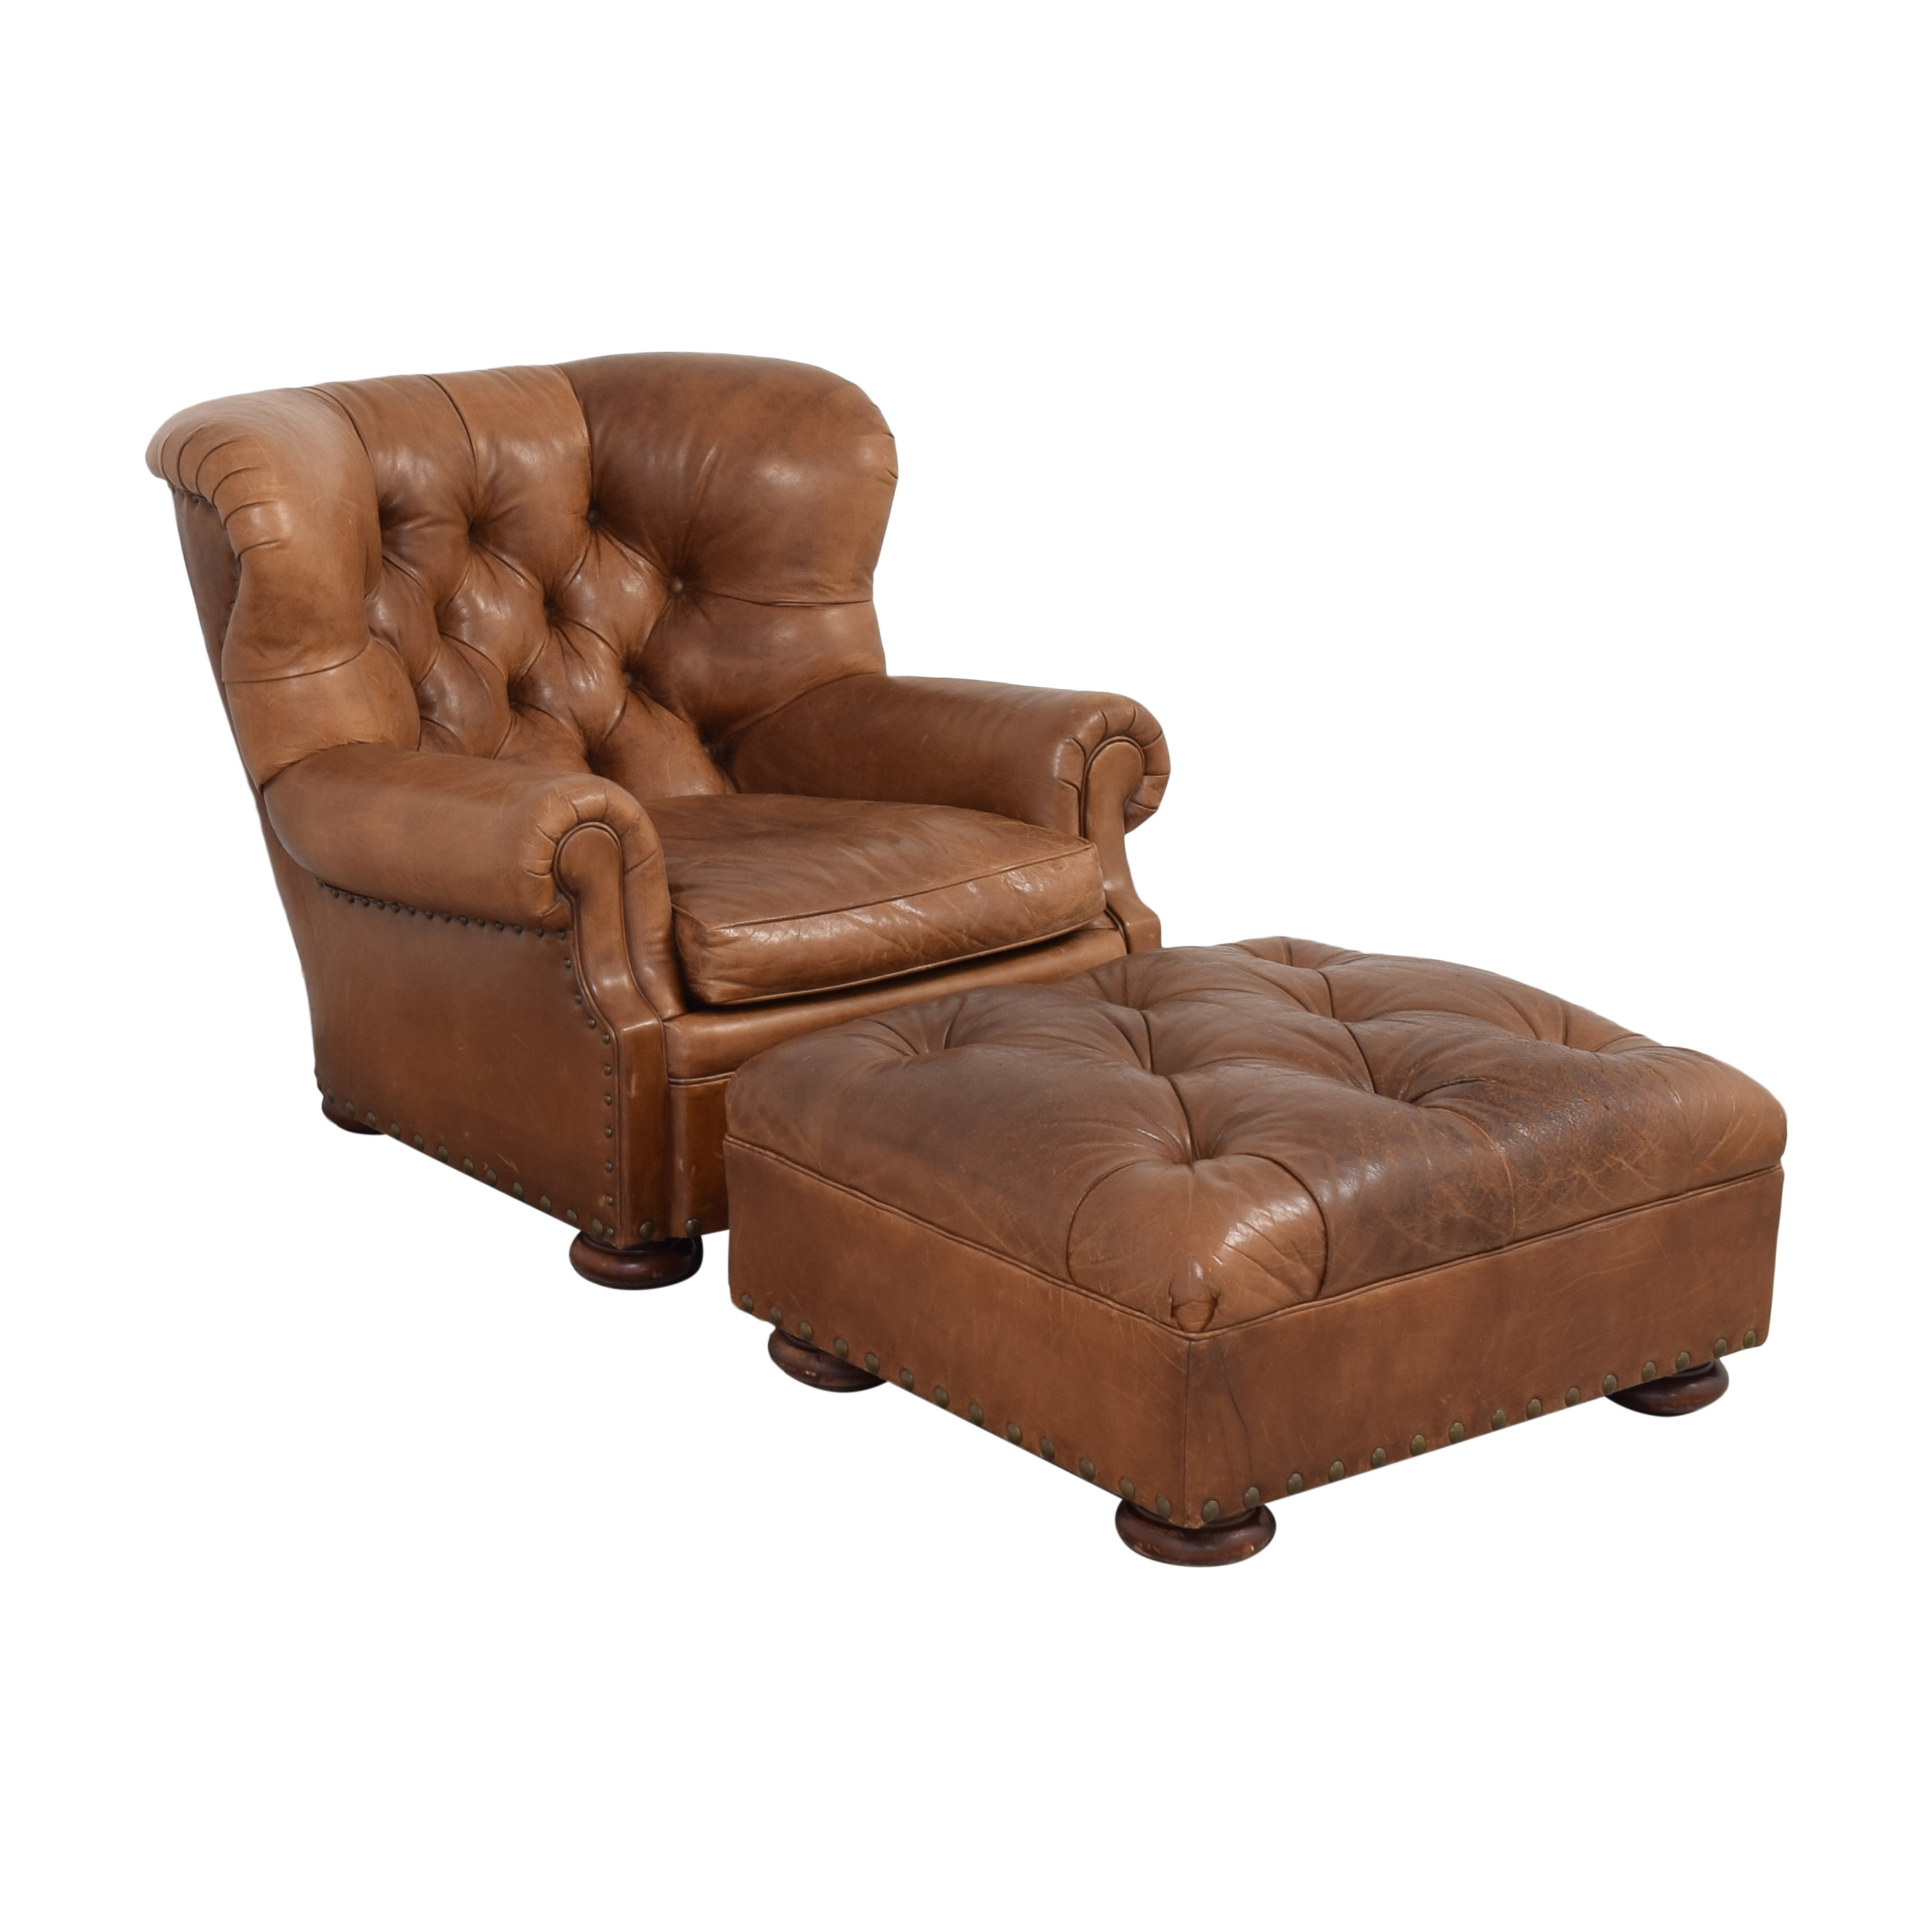 Ralph Lauren Writer's Chair and Ottoman / Accent Chairs